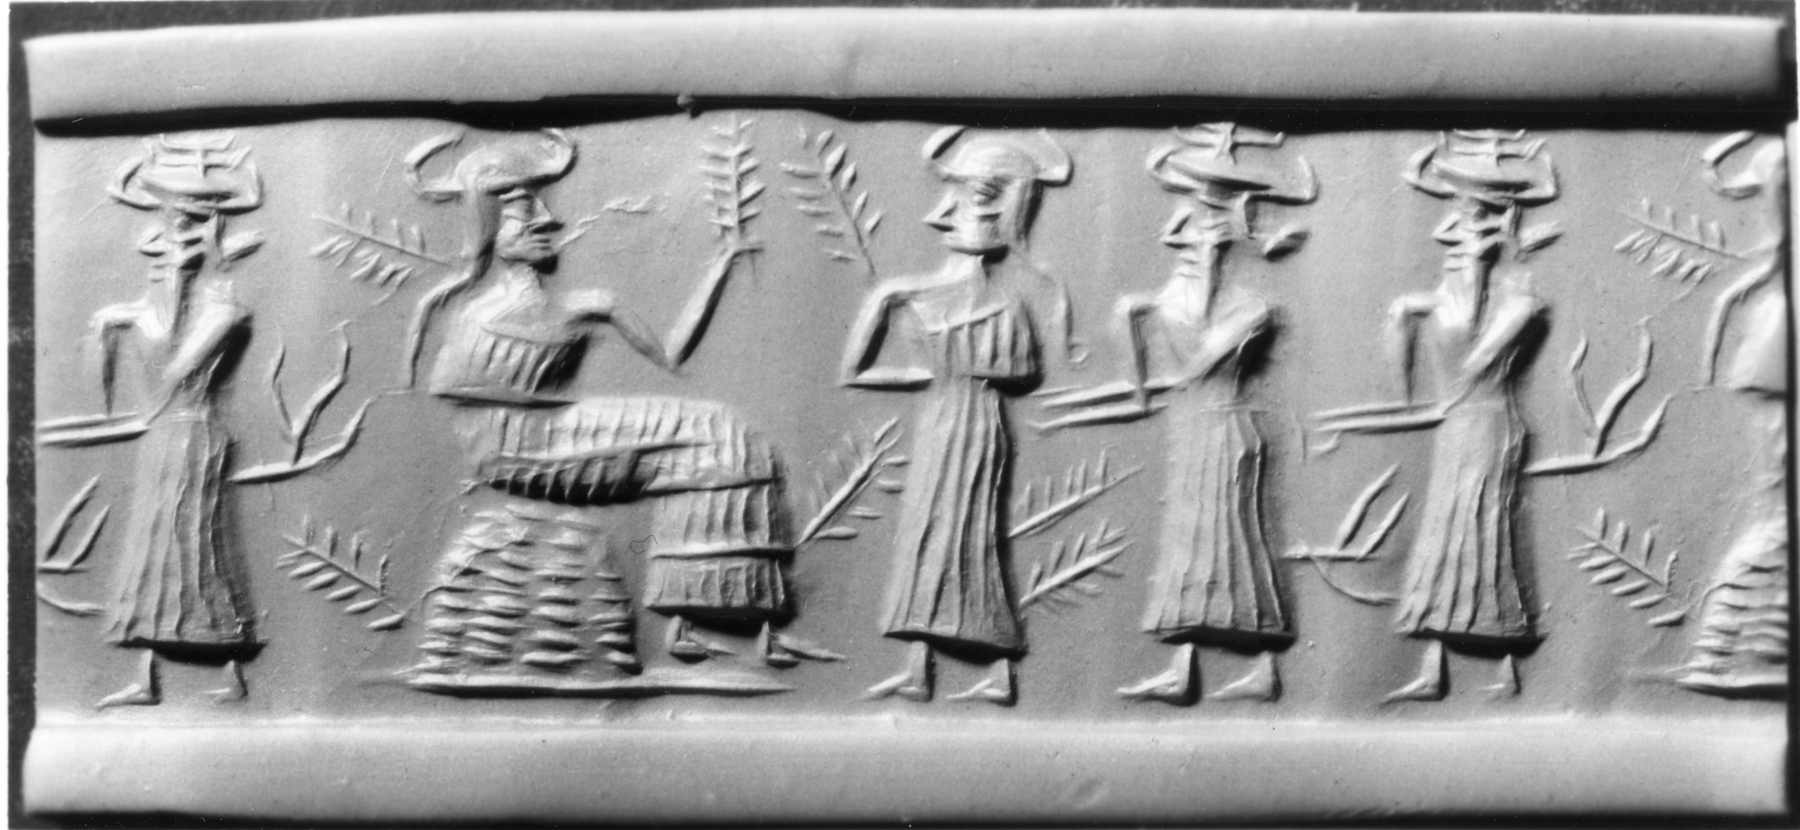 4g - Nisaba, her daughter Ninlil, & 2 unidentified gods, Enlil's mother-in-law Nisaba, the powerful goddess of food grains & of scribing the alien Anunnaki records for all time, the wise goddess, SEE NINLIL TEXTS BELOW, SEE NISABA ON MINOR GODS PAGE N - Z